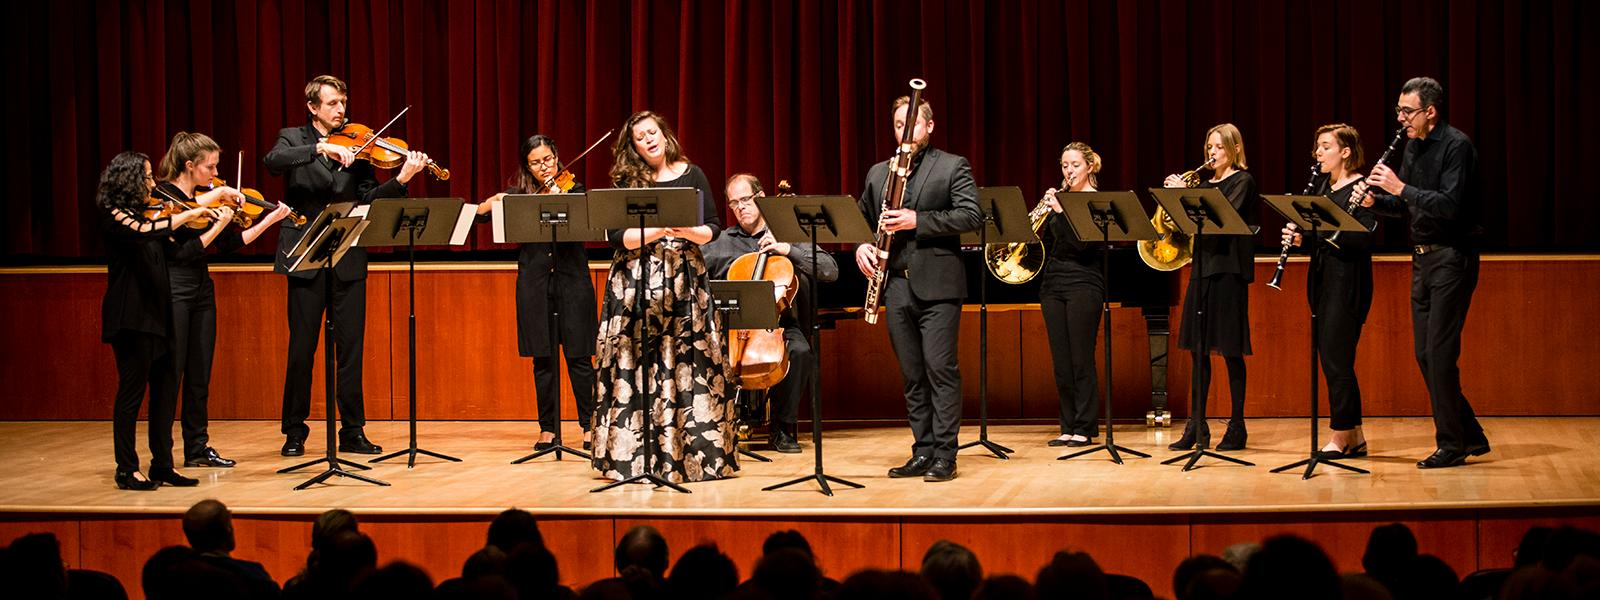 UNCSA School of Music faculty and students performing at the annual Mozart Birthday Concert / photo: Christine Rucker